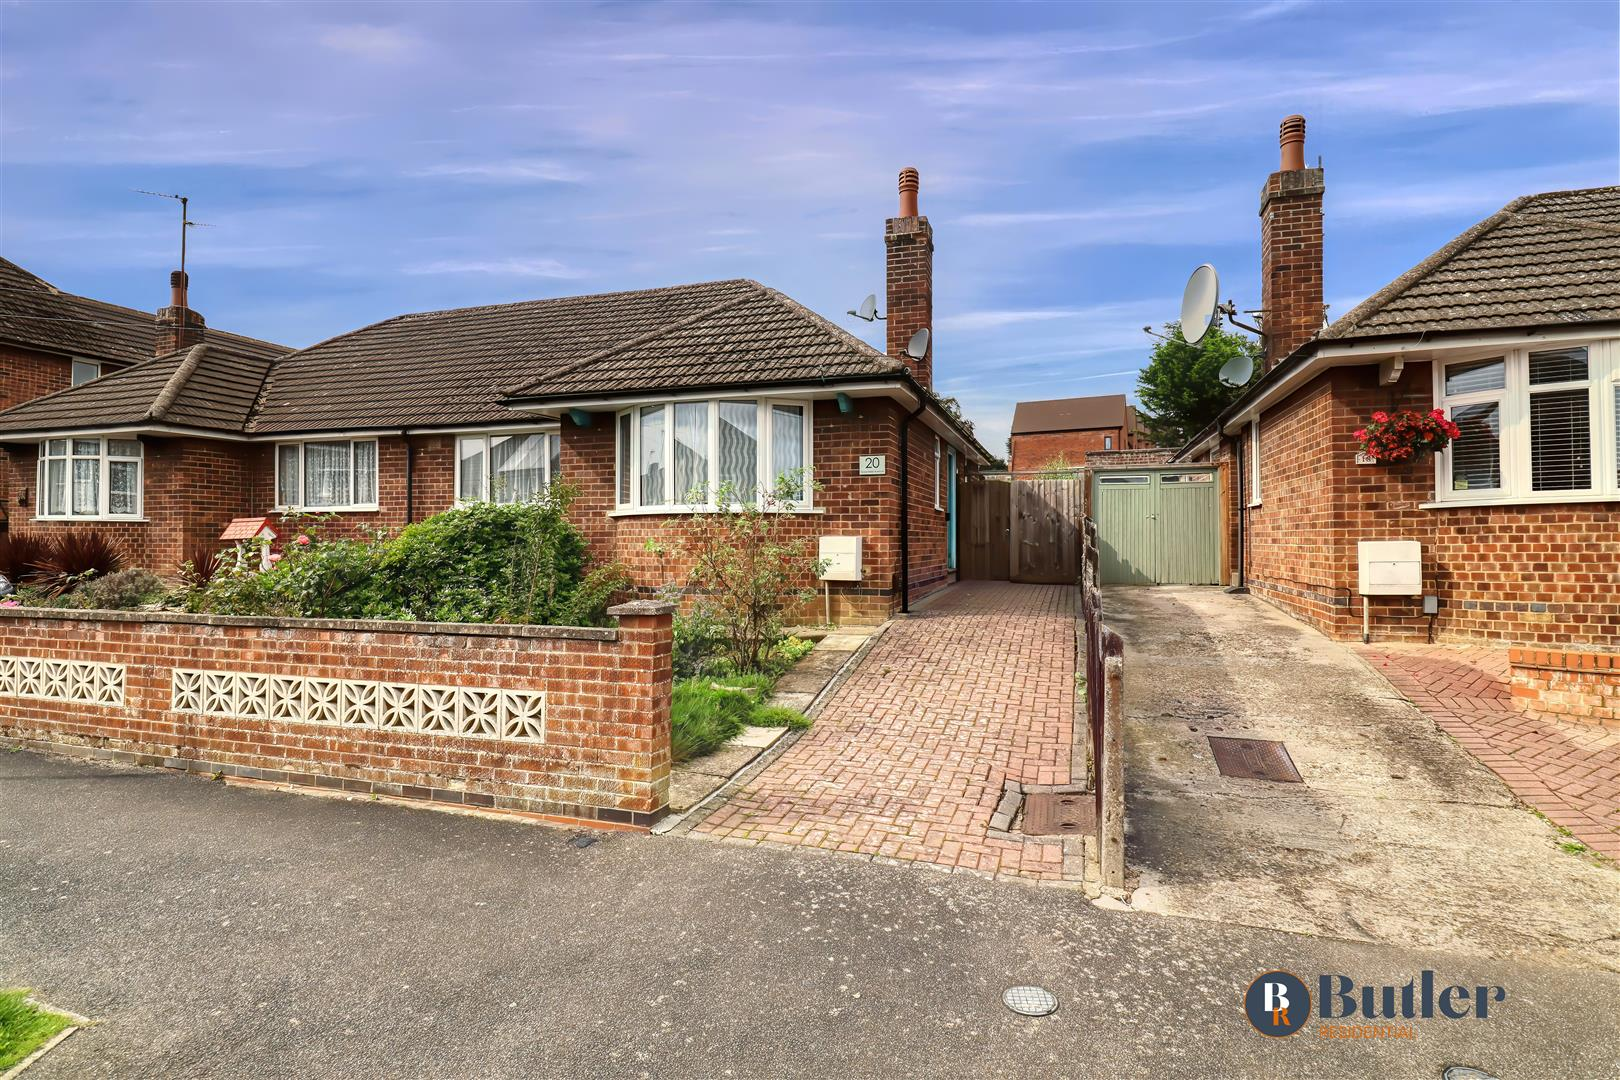 2 bed semi-detached bungalow for sale in Greenfield Avenue, Kettering - Property Image 1